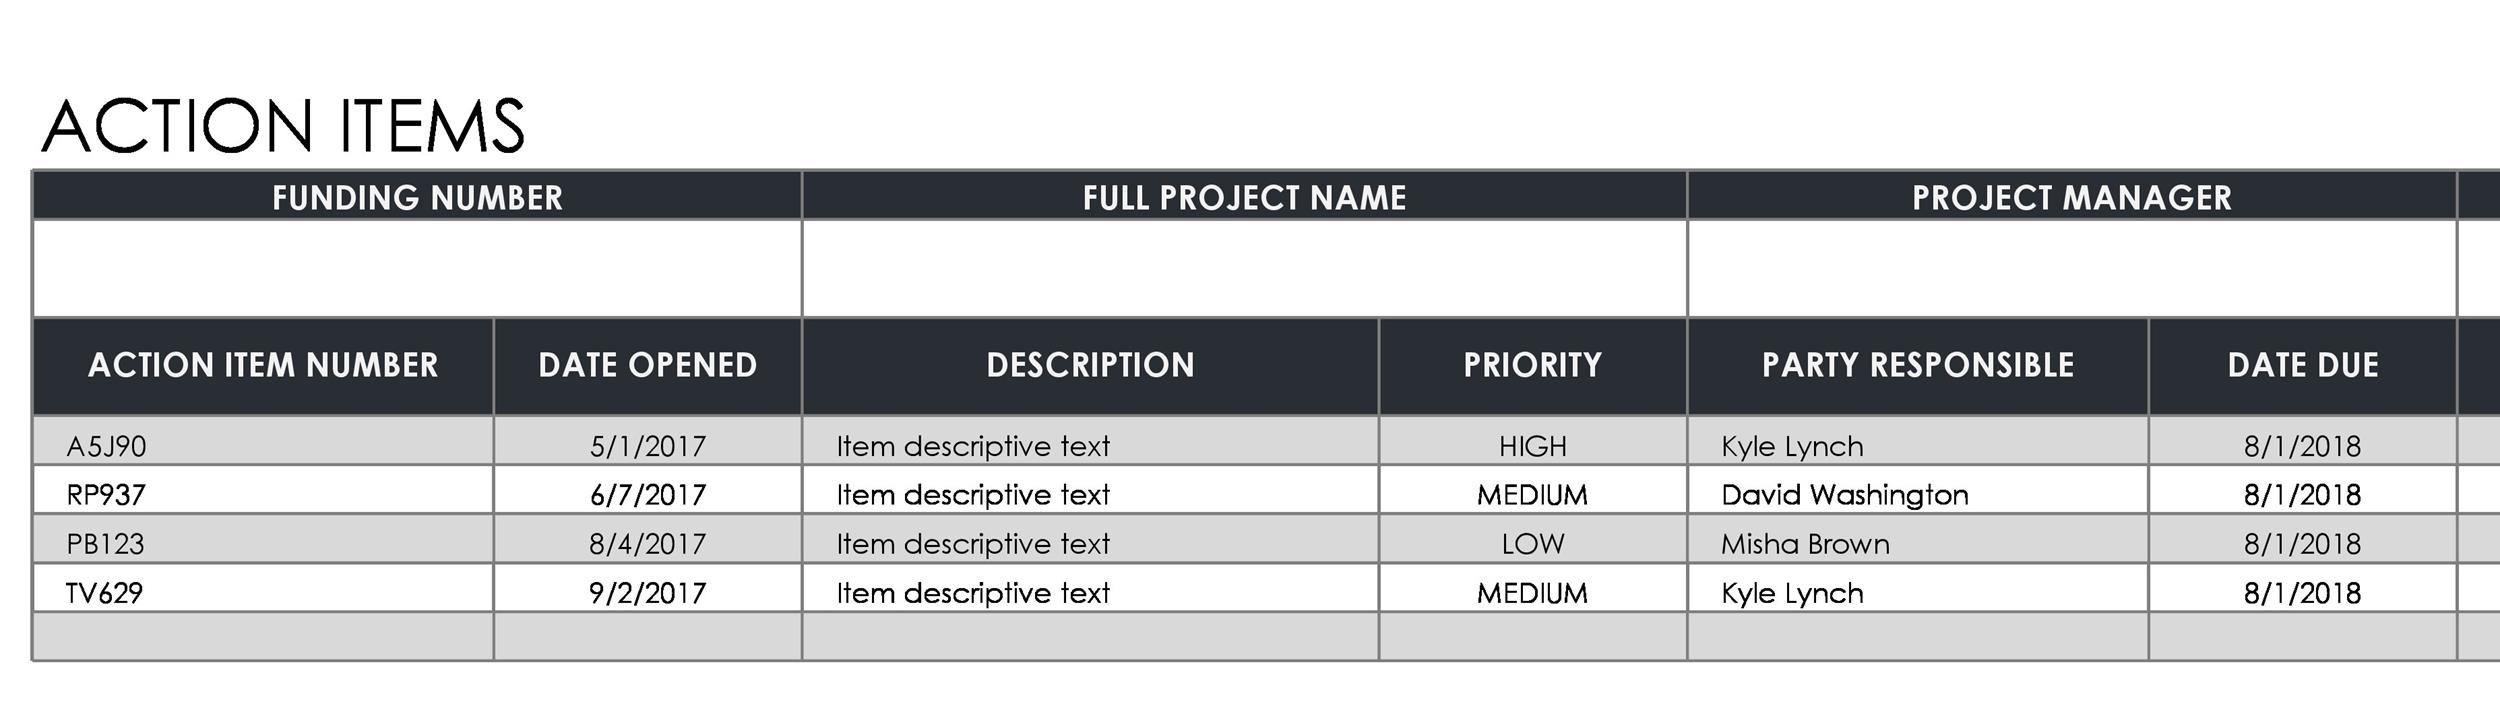 Free action items template 14